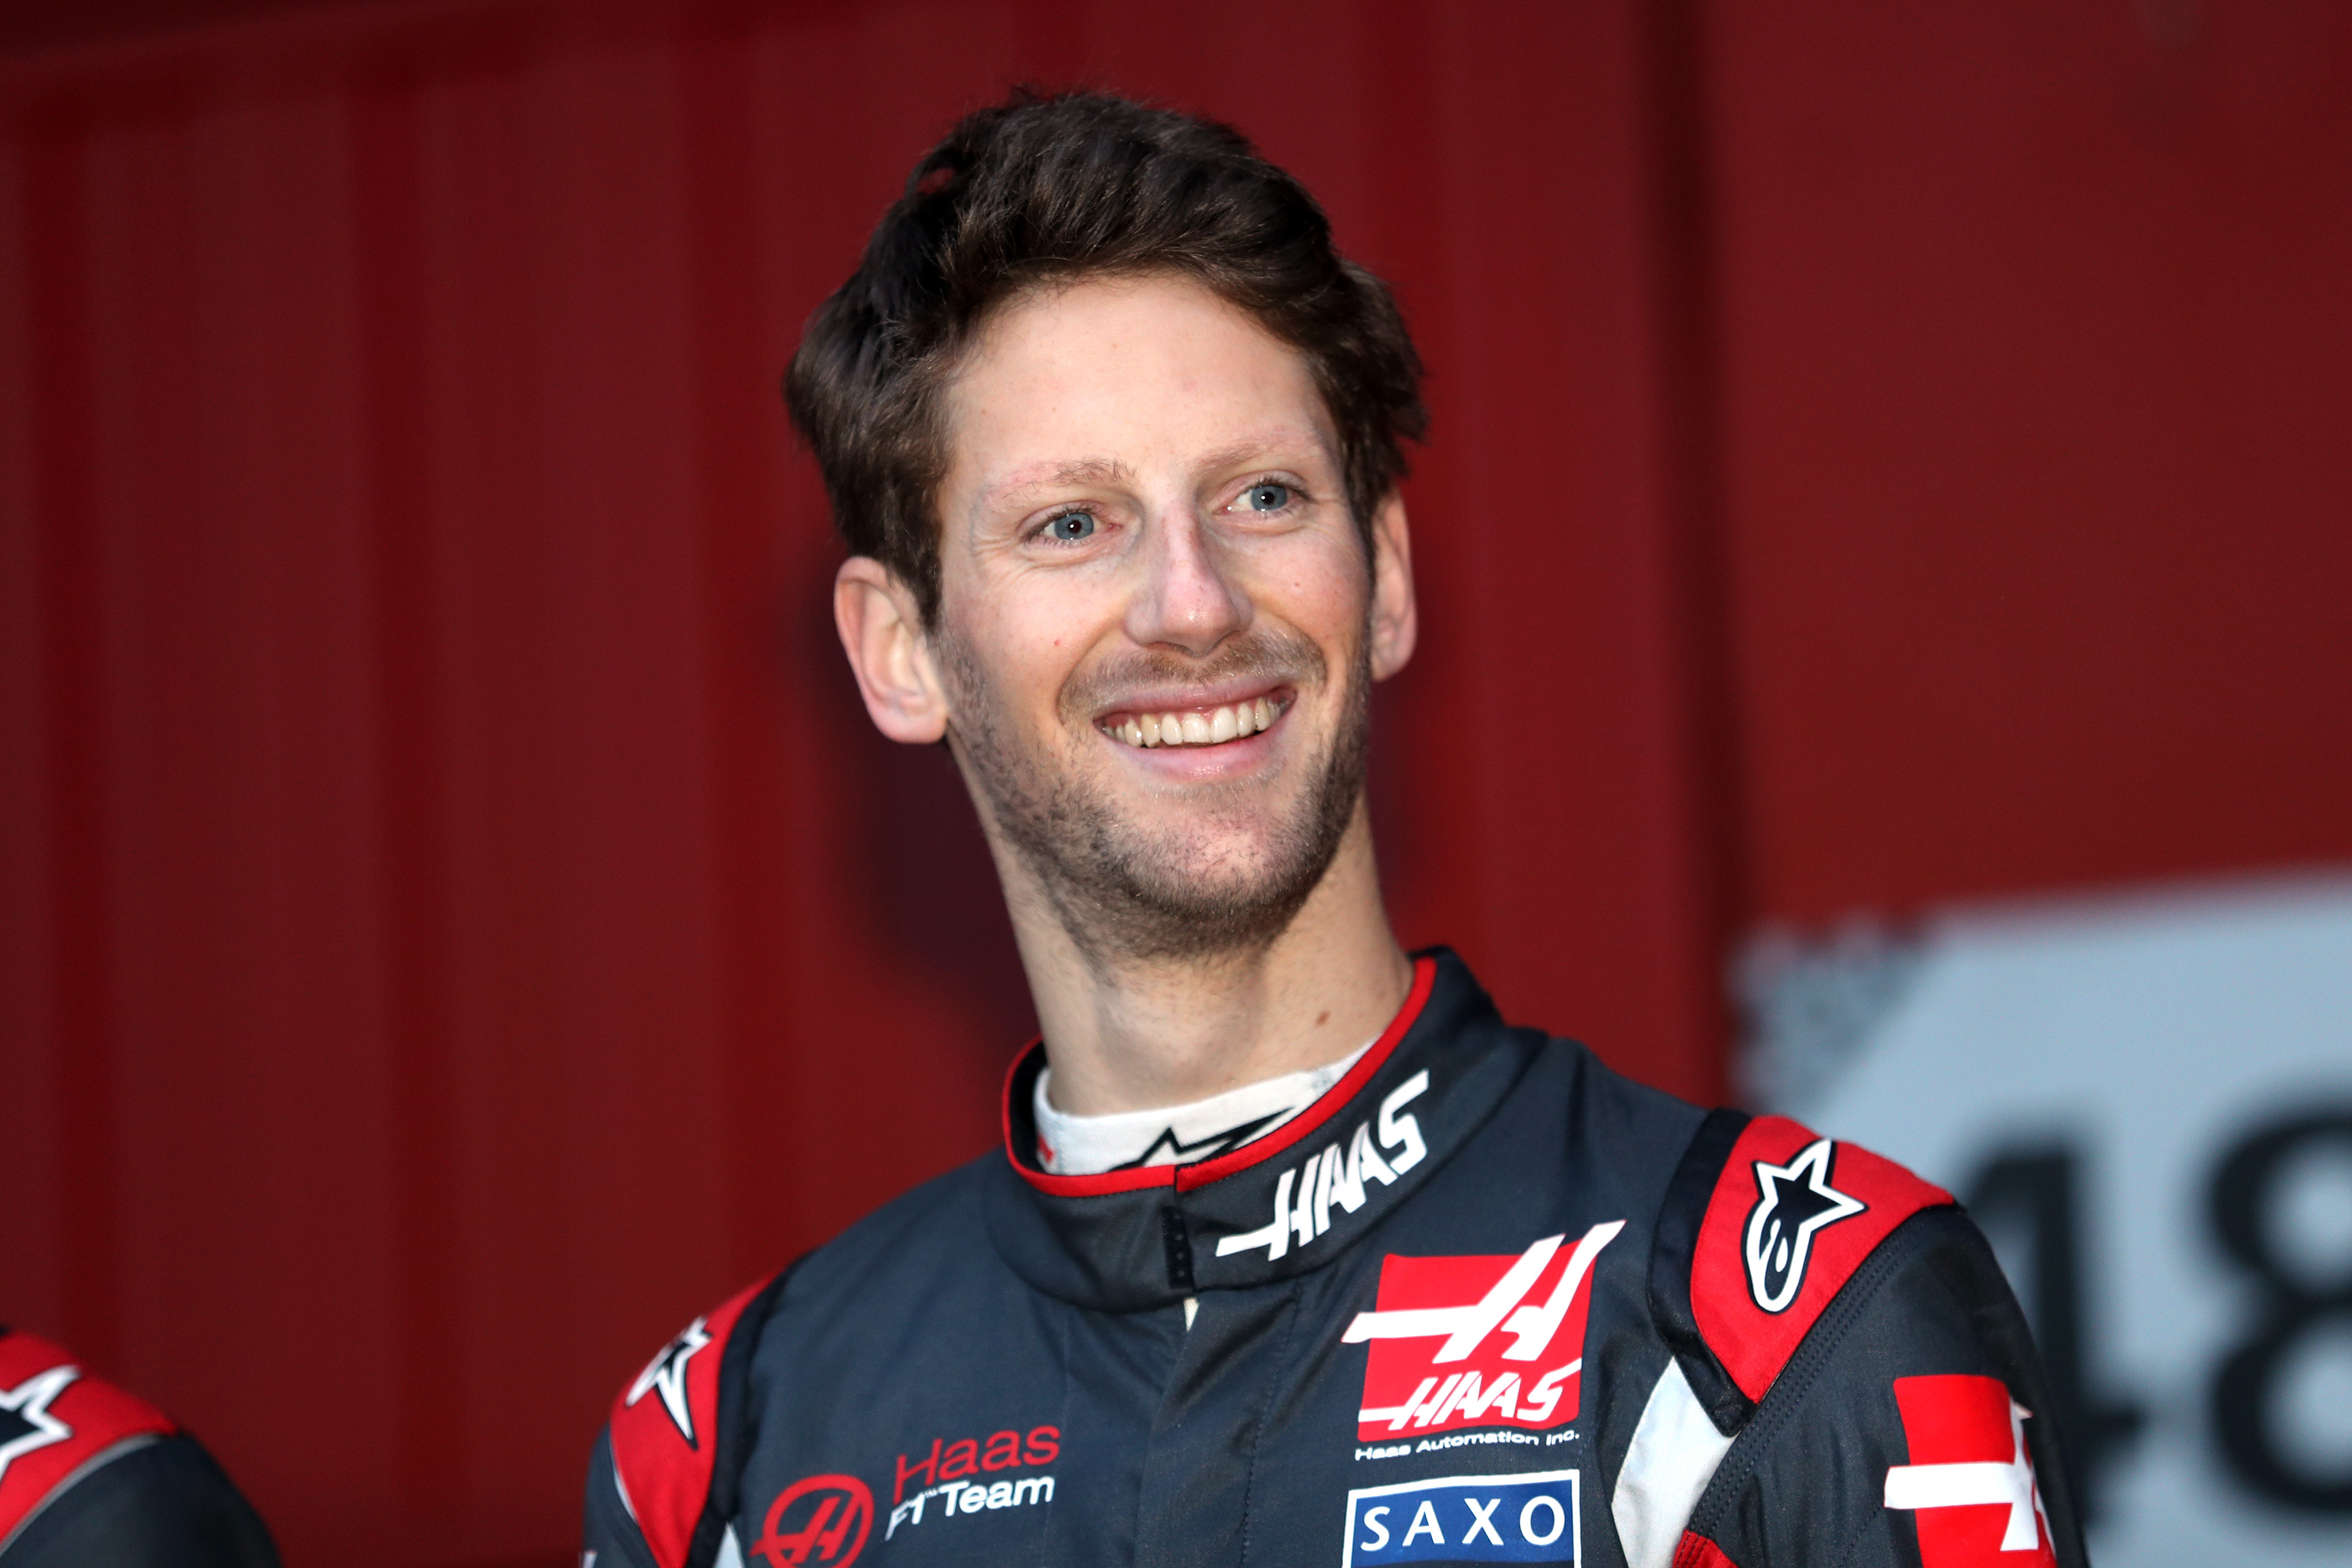 Haas Romain Grosjean during day one of testing at the Circuit de Catalunya, Barcelona.